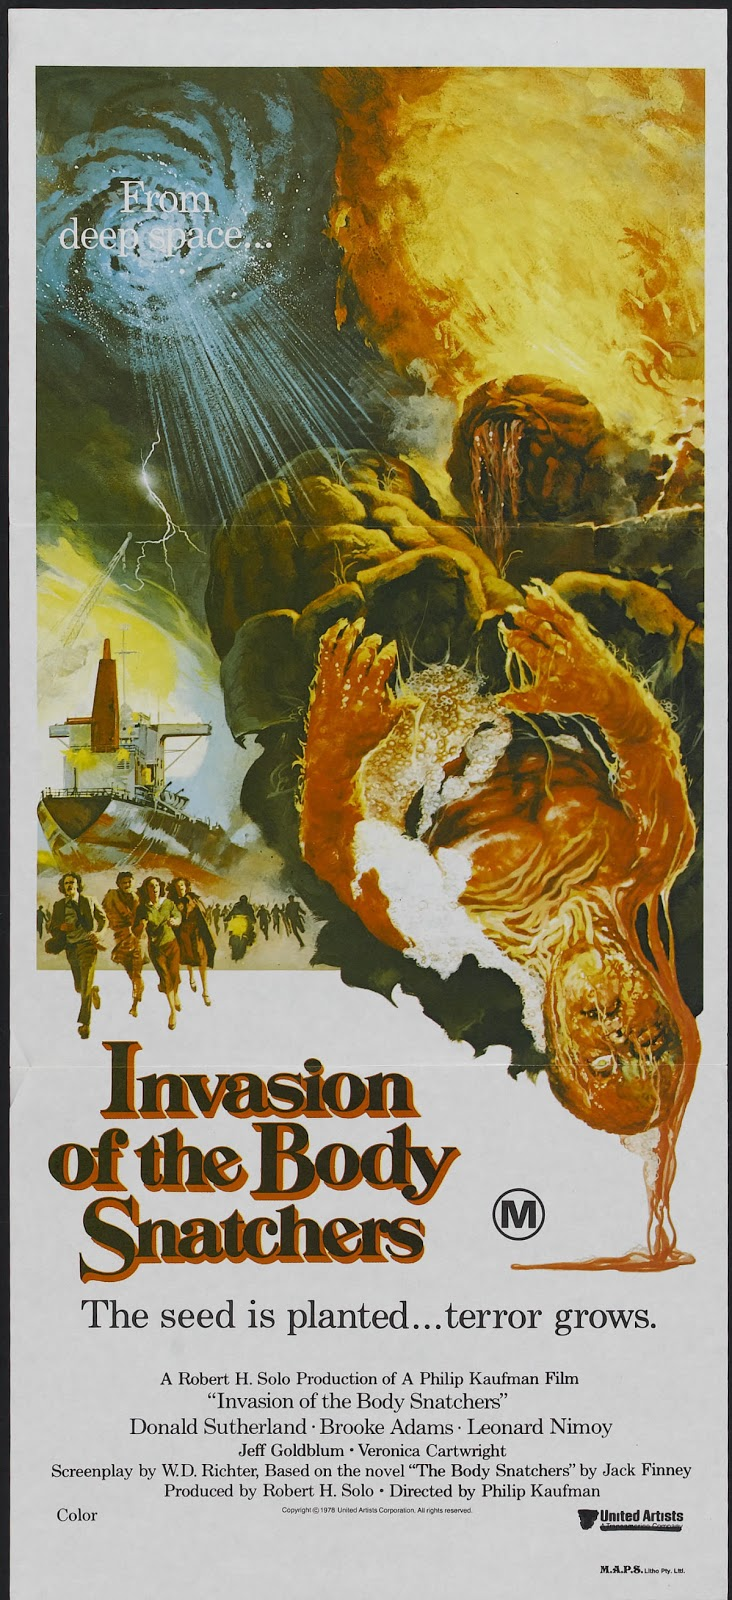 Vic S Review Invasion Of The Body Snatchers 1978